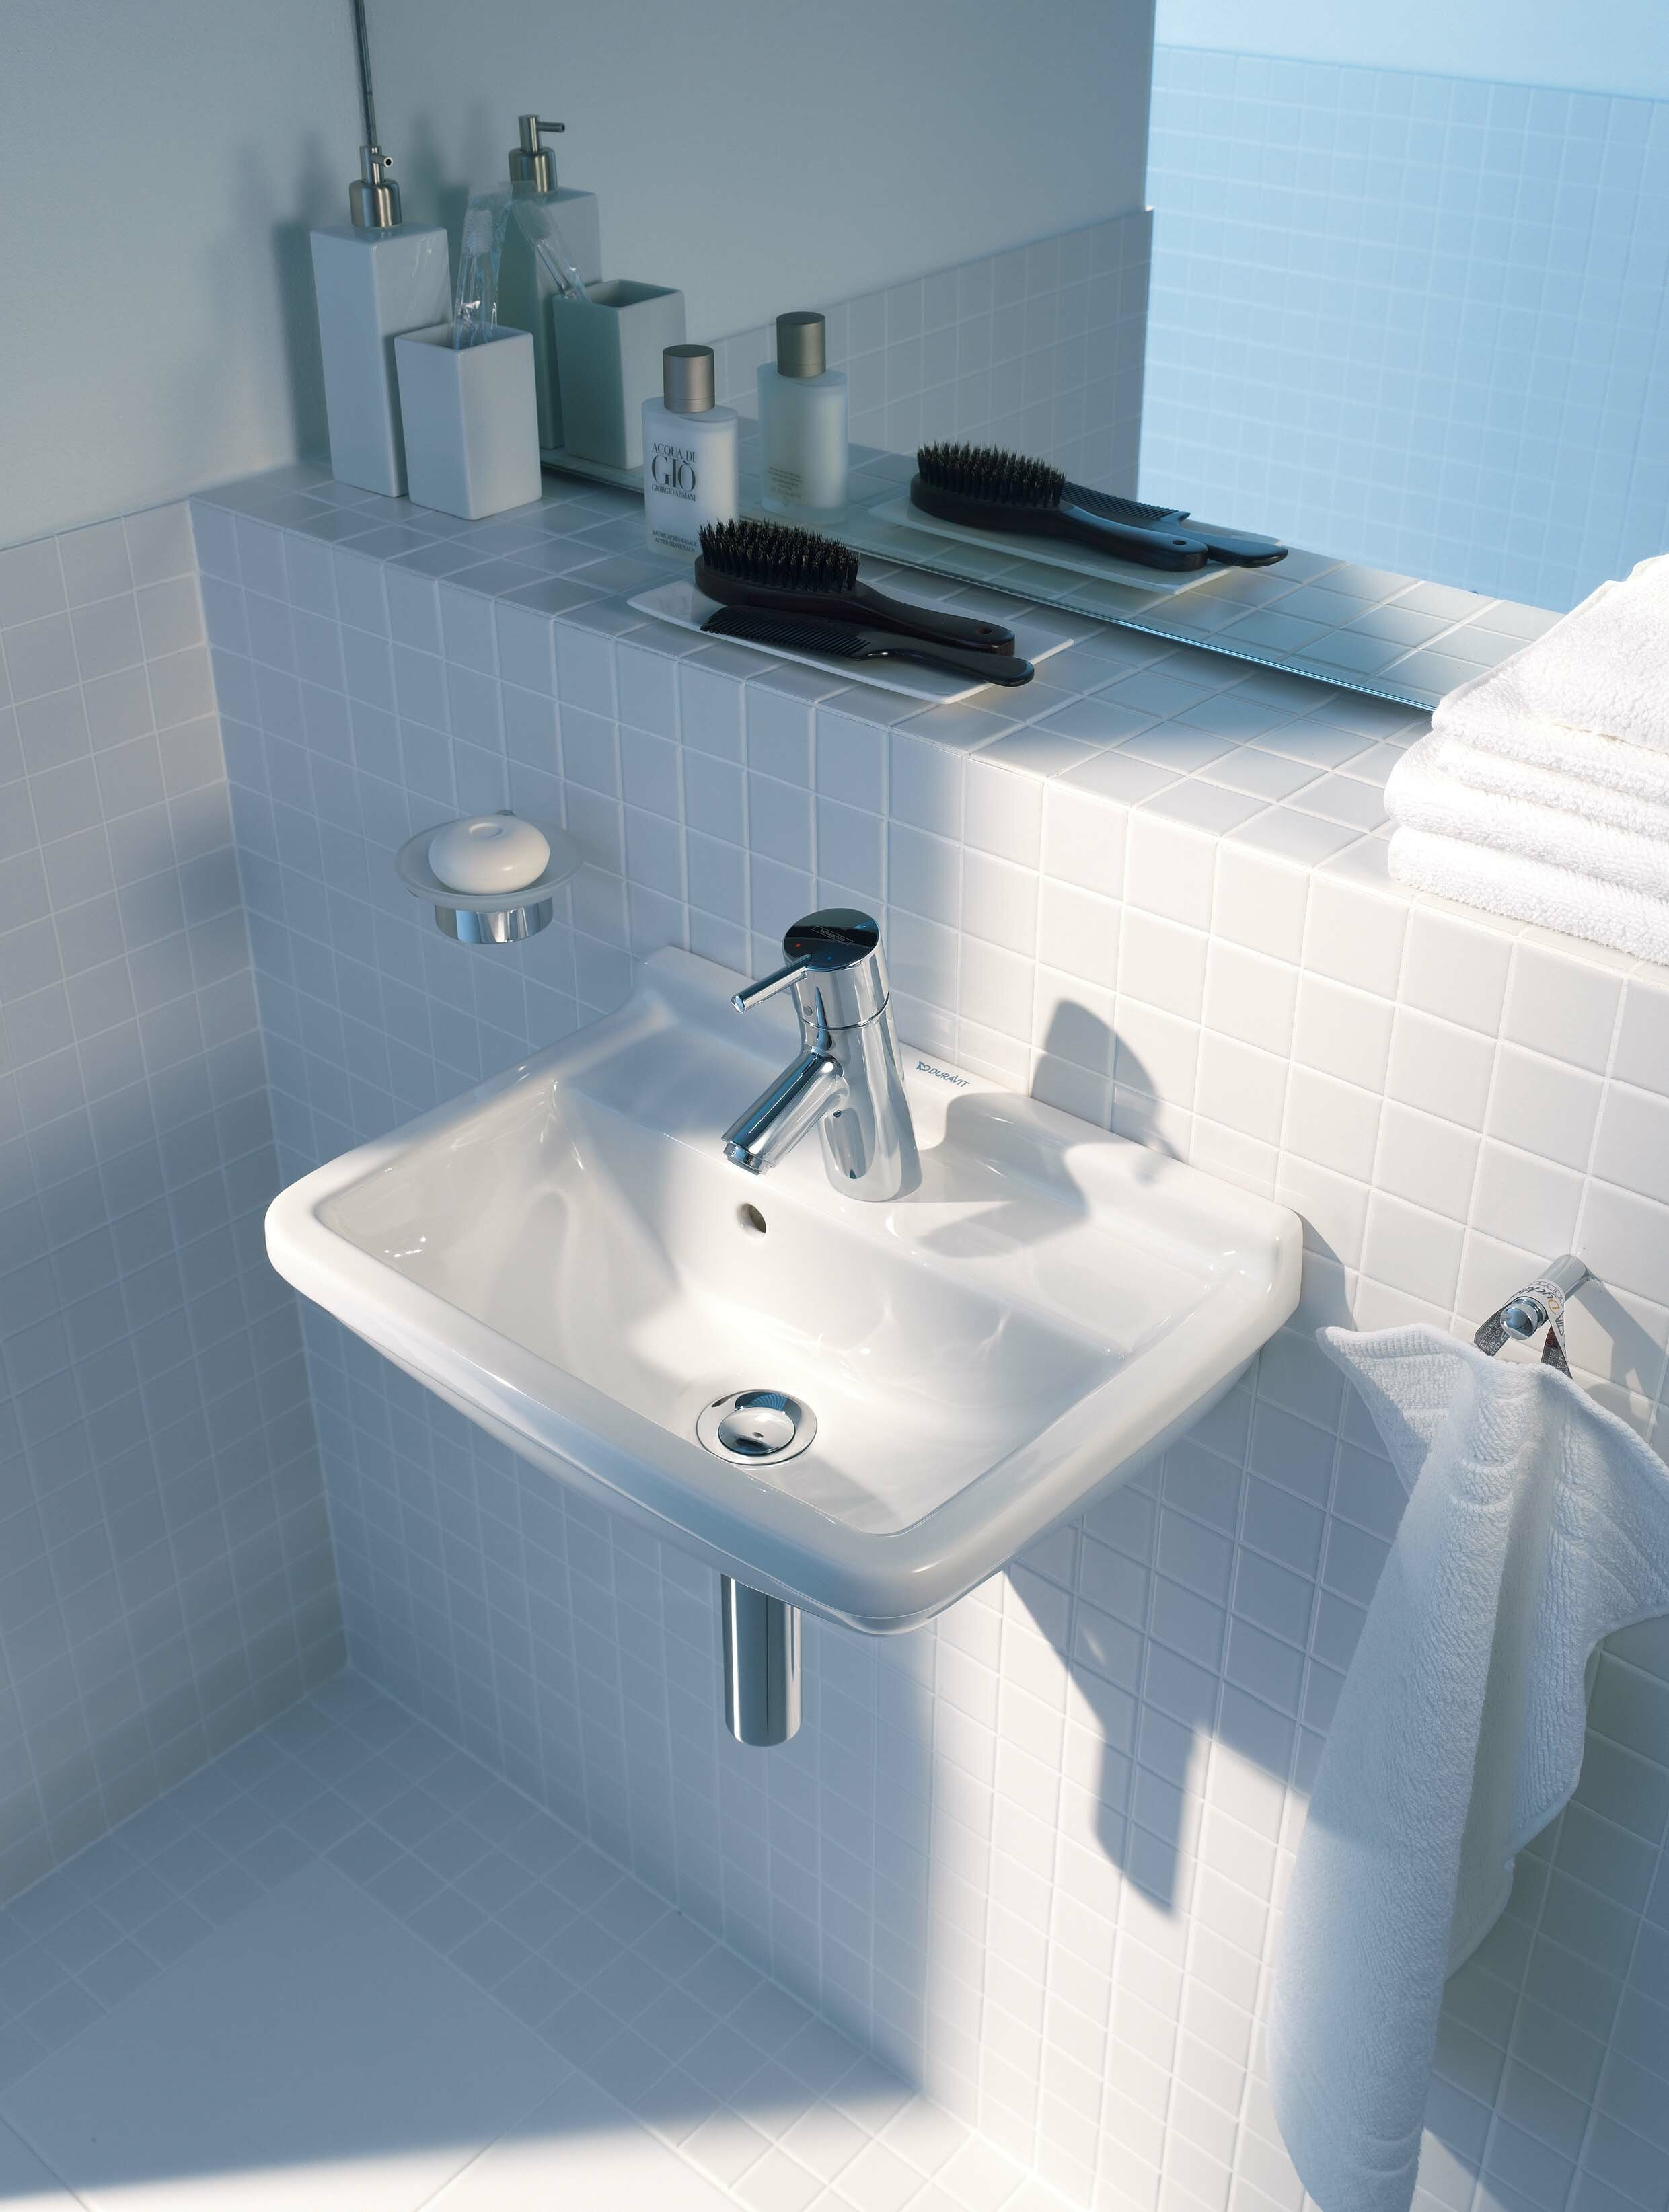 Bon Starck 3 Ceramic Vitreous China Specialty Wall Mount Bathroom Sink With  Overflow